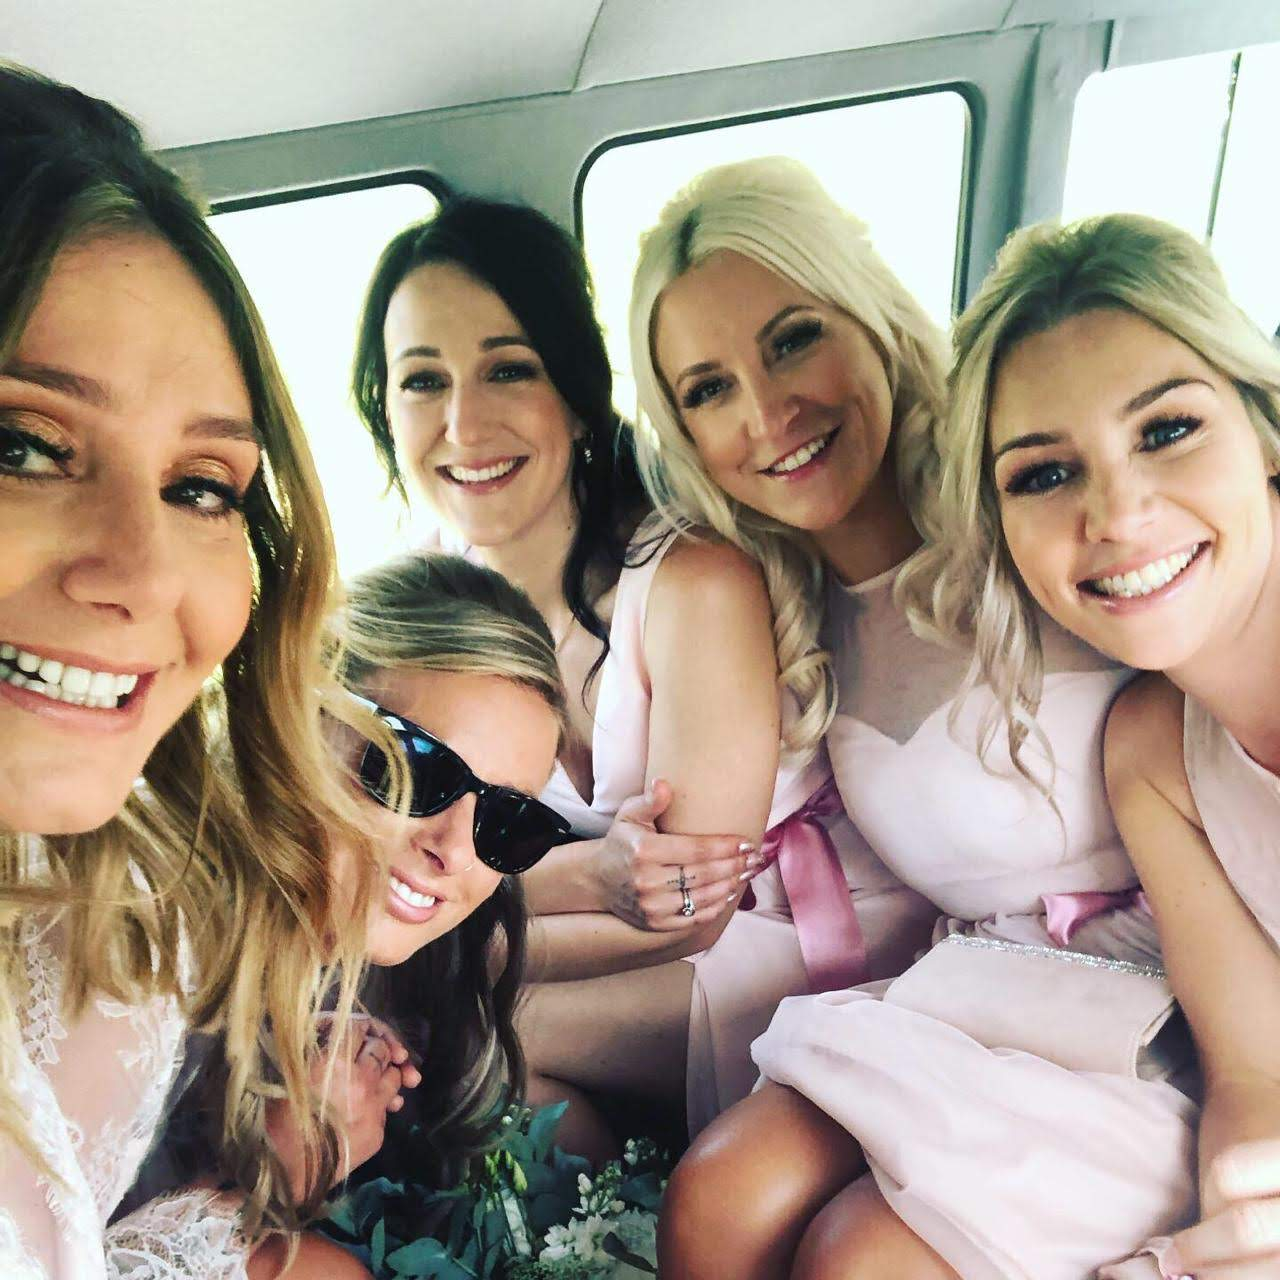 The bridesmaids were having a great time in the campervan!